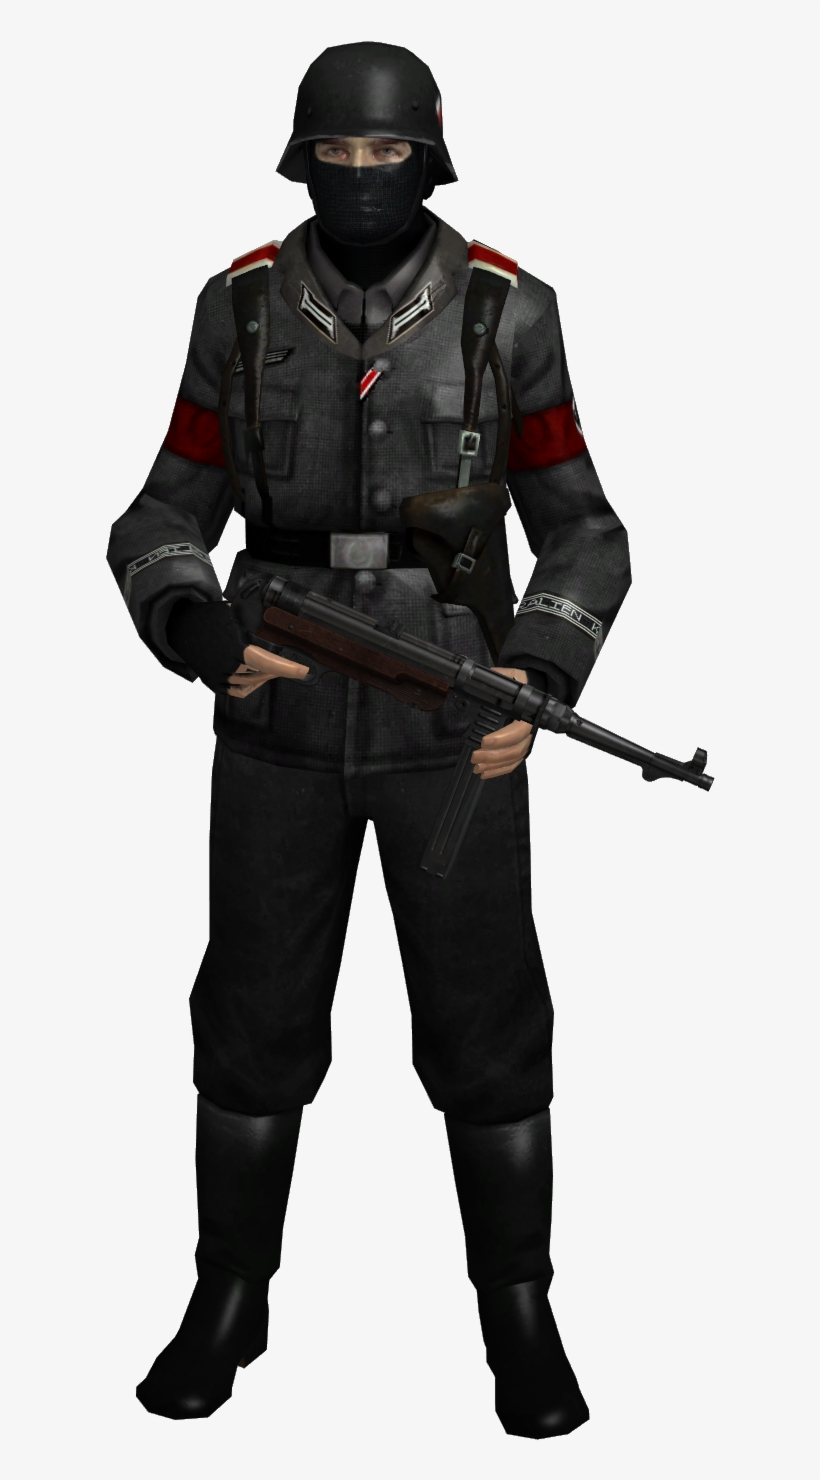 Ww2 Soldier Png.